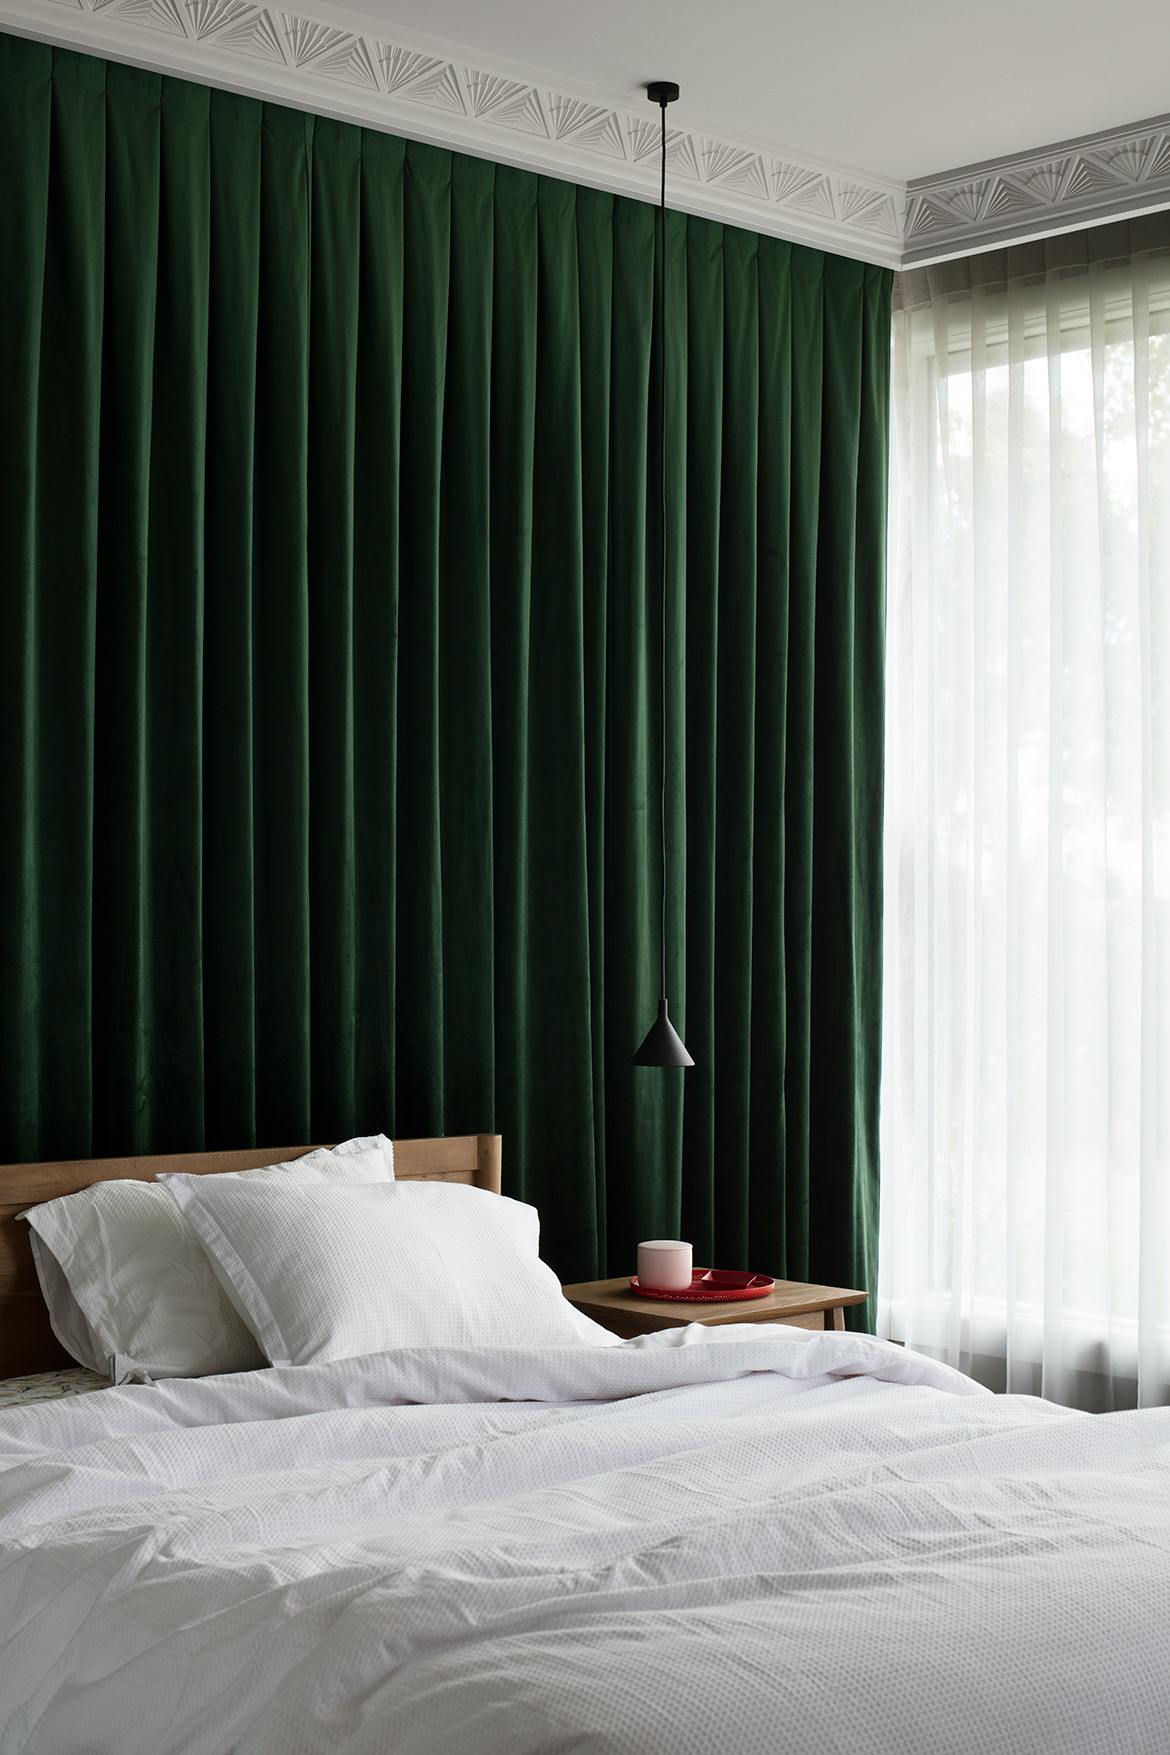 The master bedroom's white bedding and forest-green curtains.